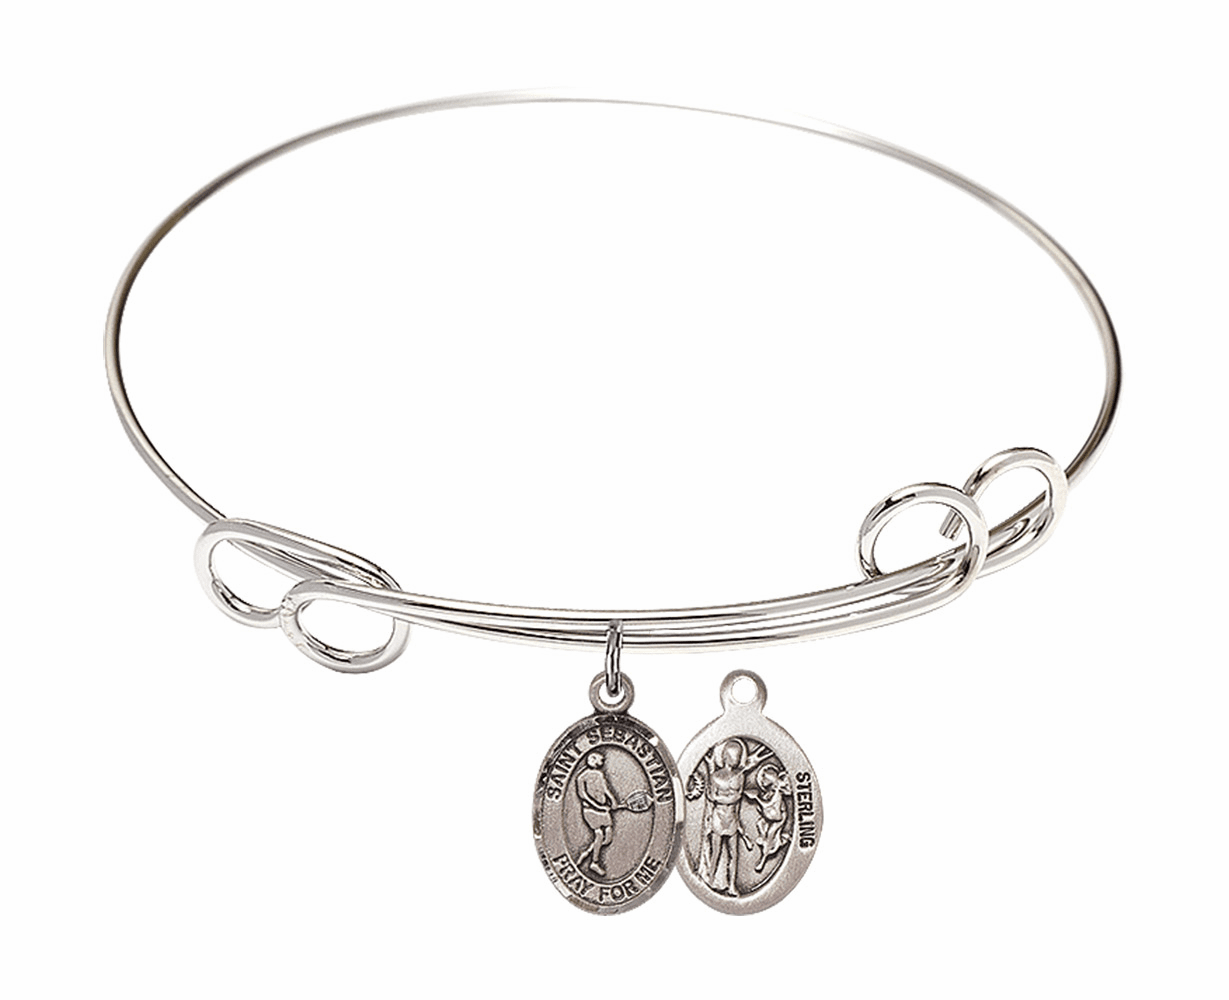 Round Loop St Sebastian Tennis Bangle Charm Bracelet by Bliss